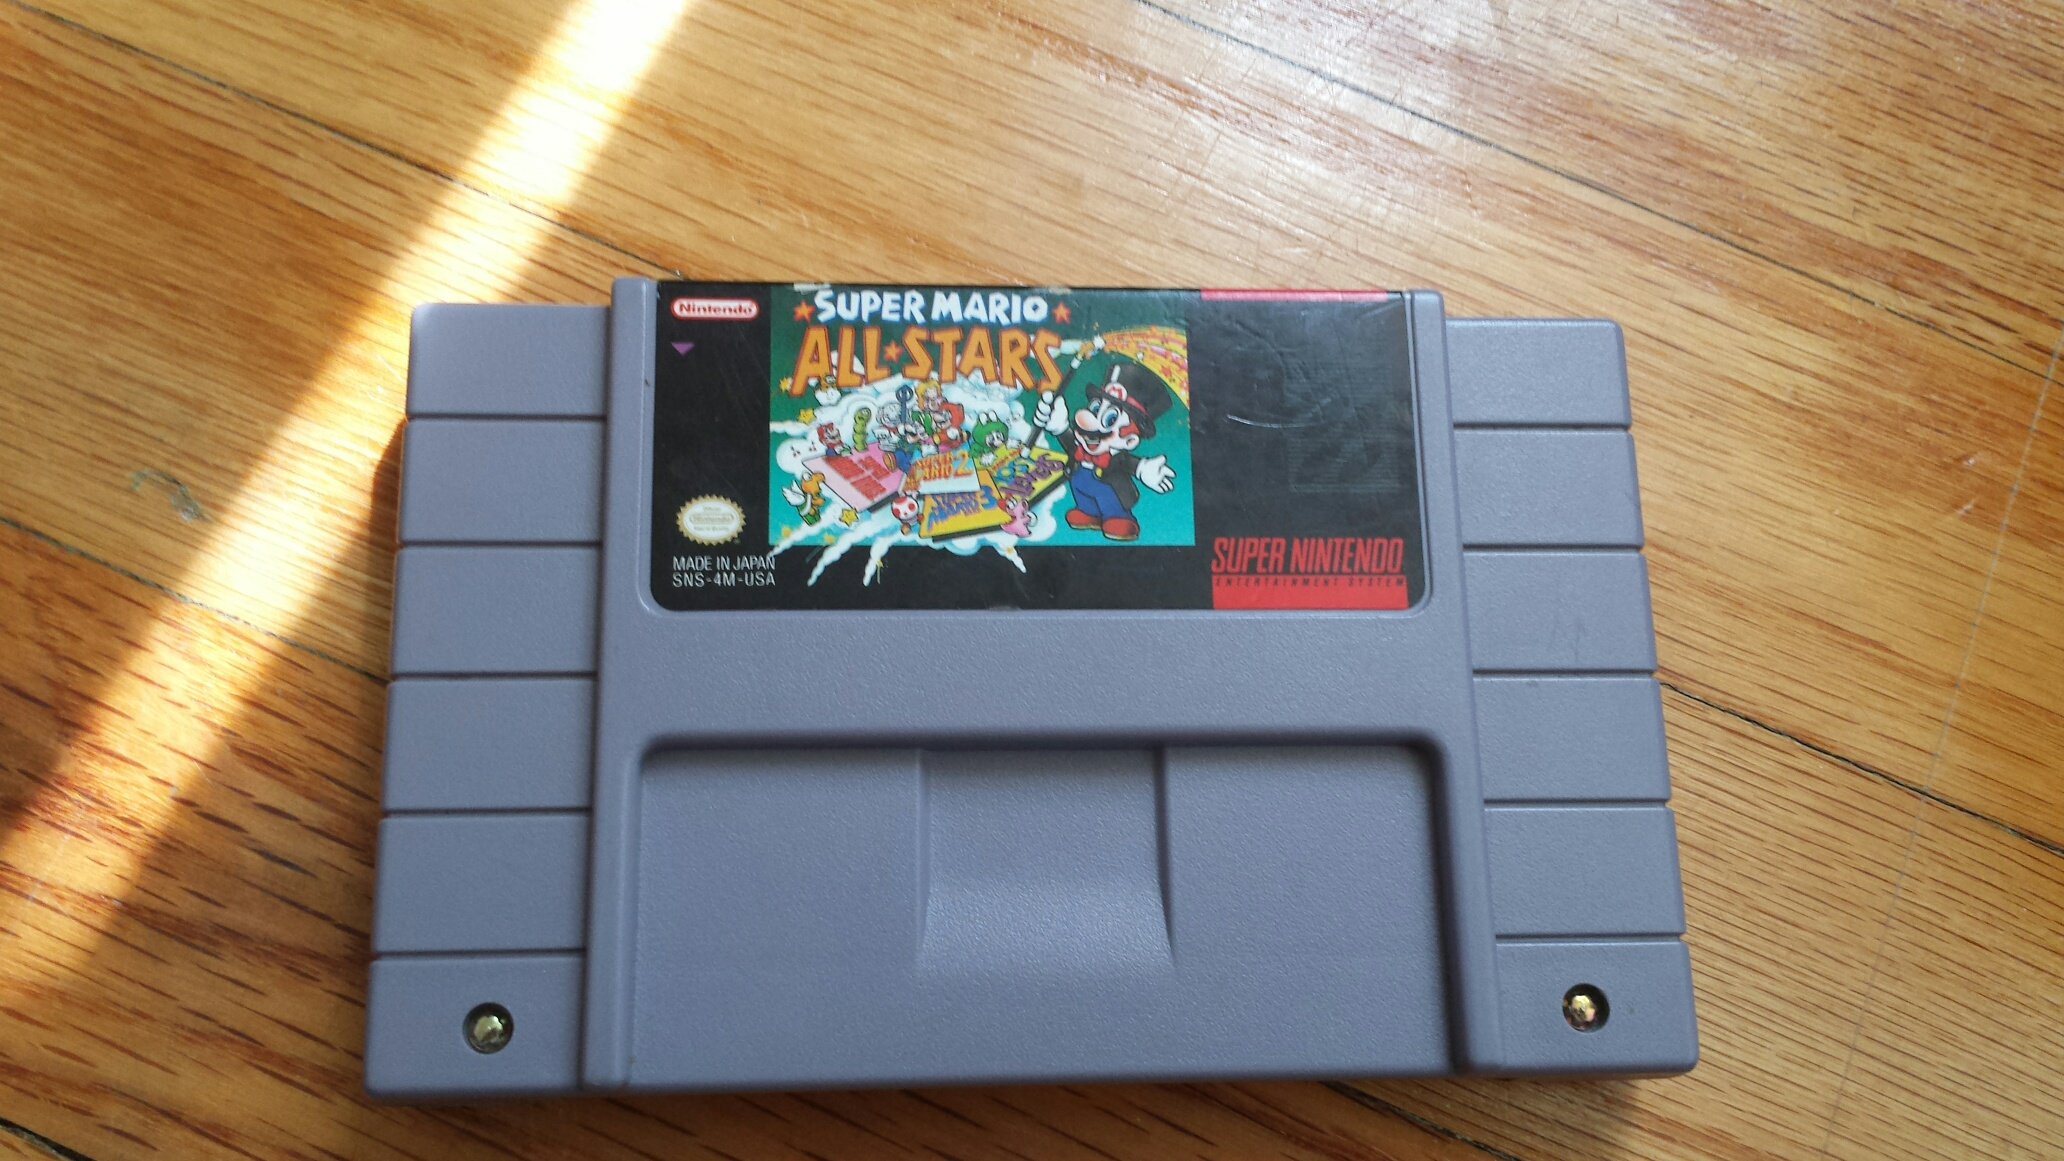 Super Mario All-Stars (SNES) from DreamShooters